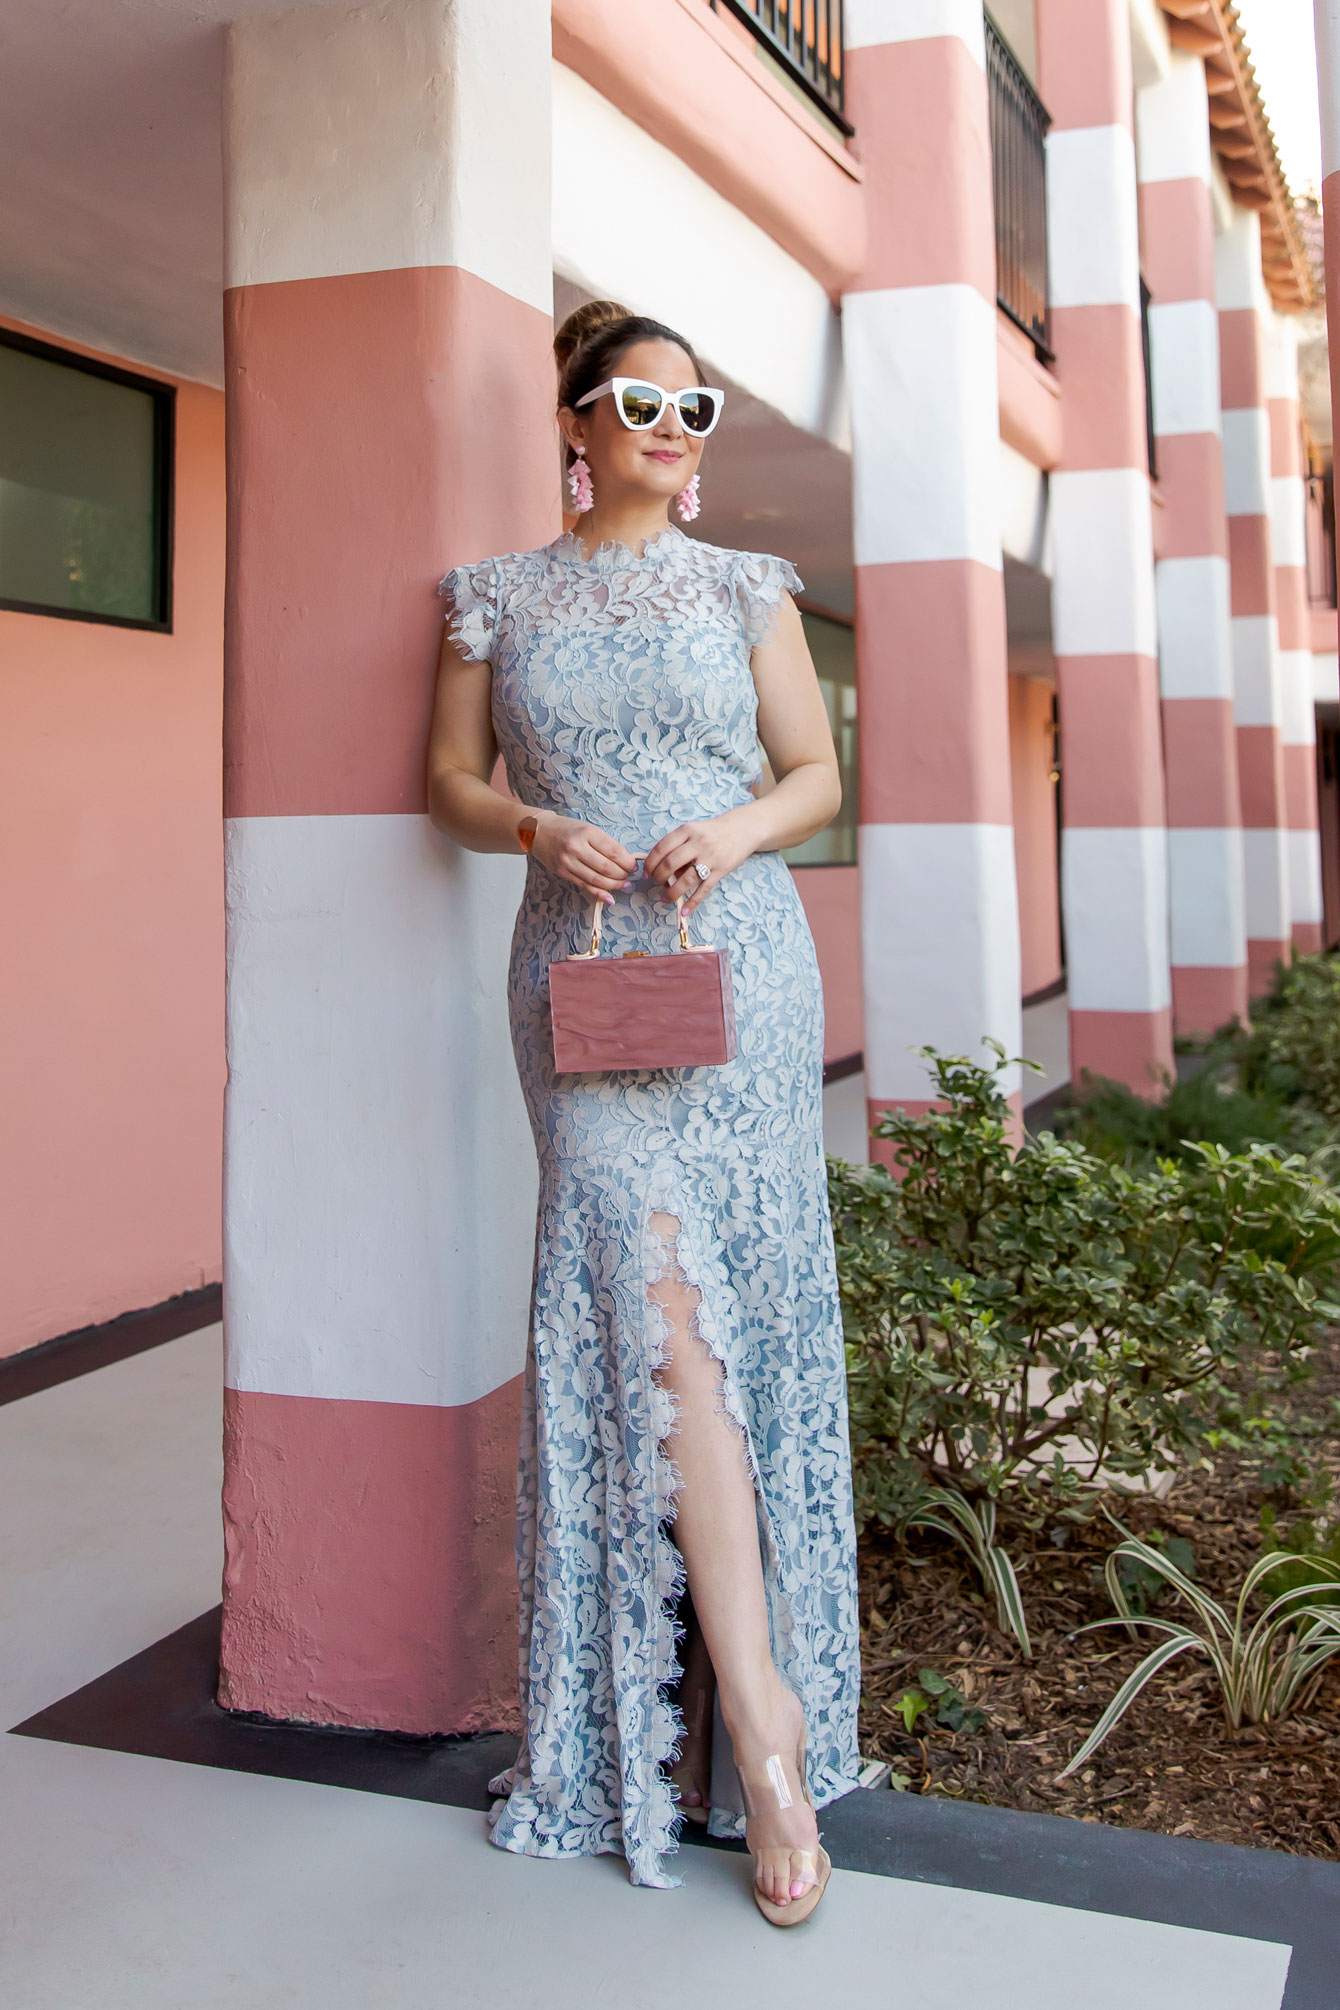 Blue Lace Evening Dress